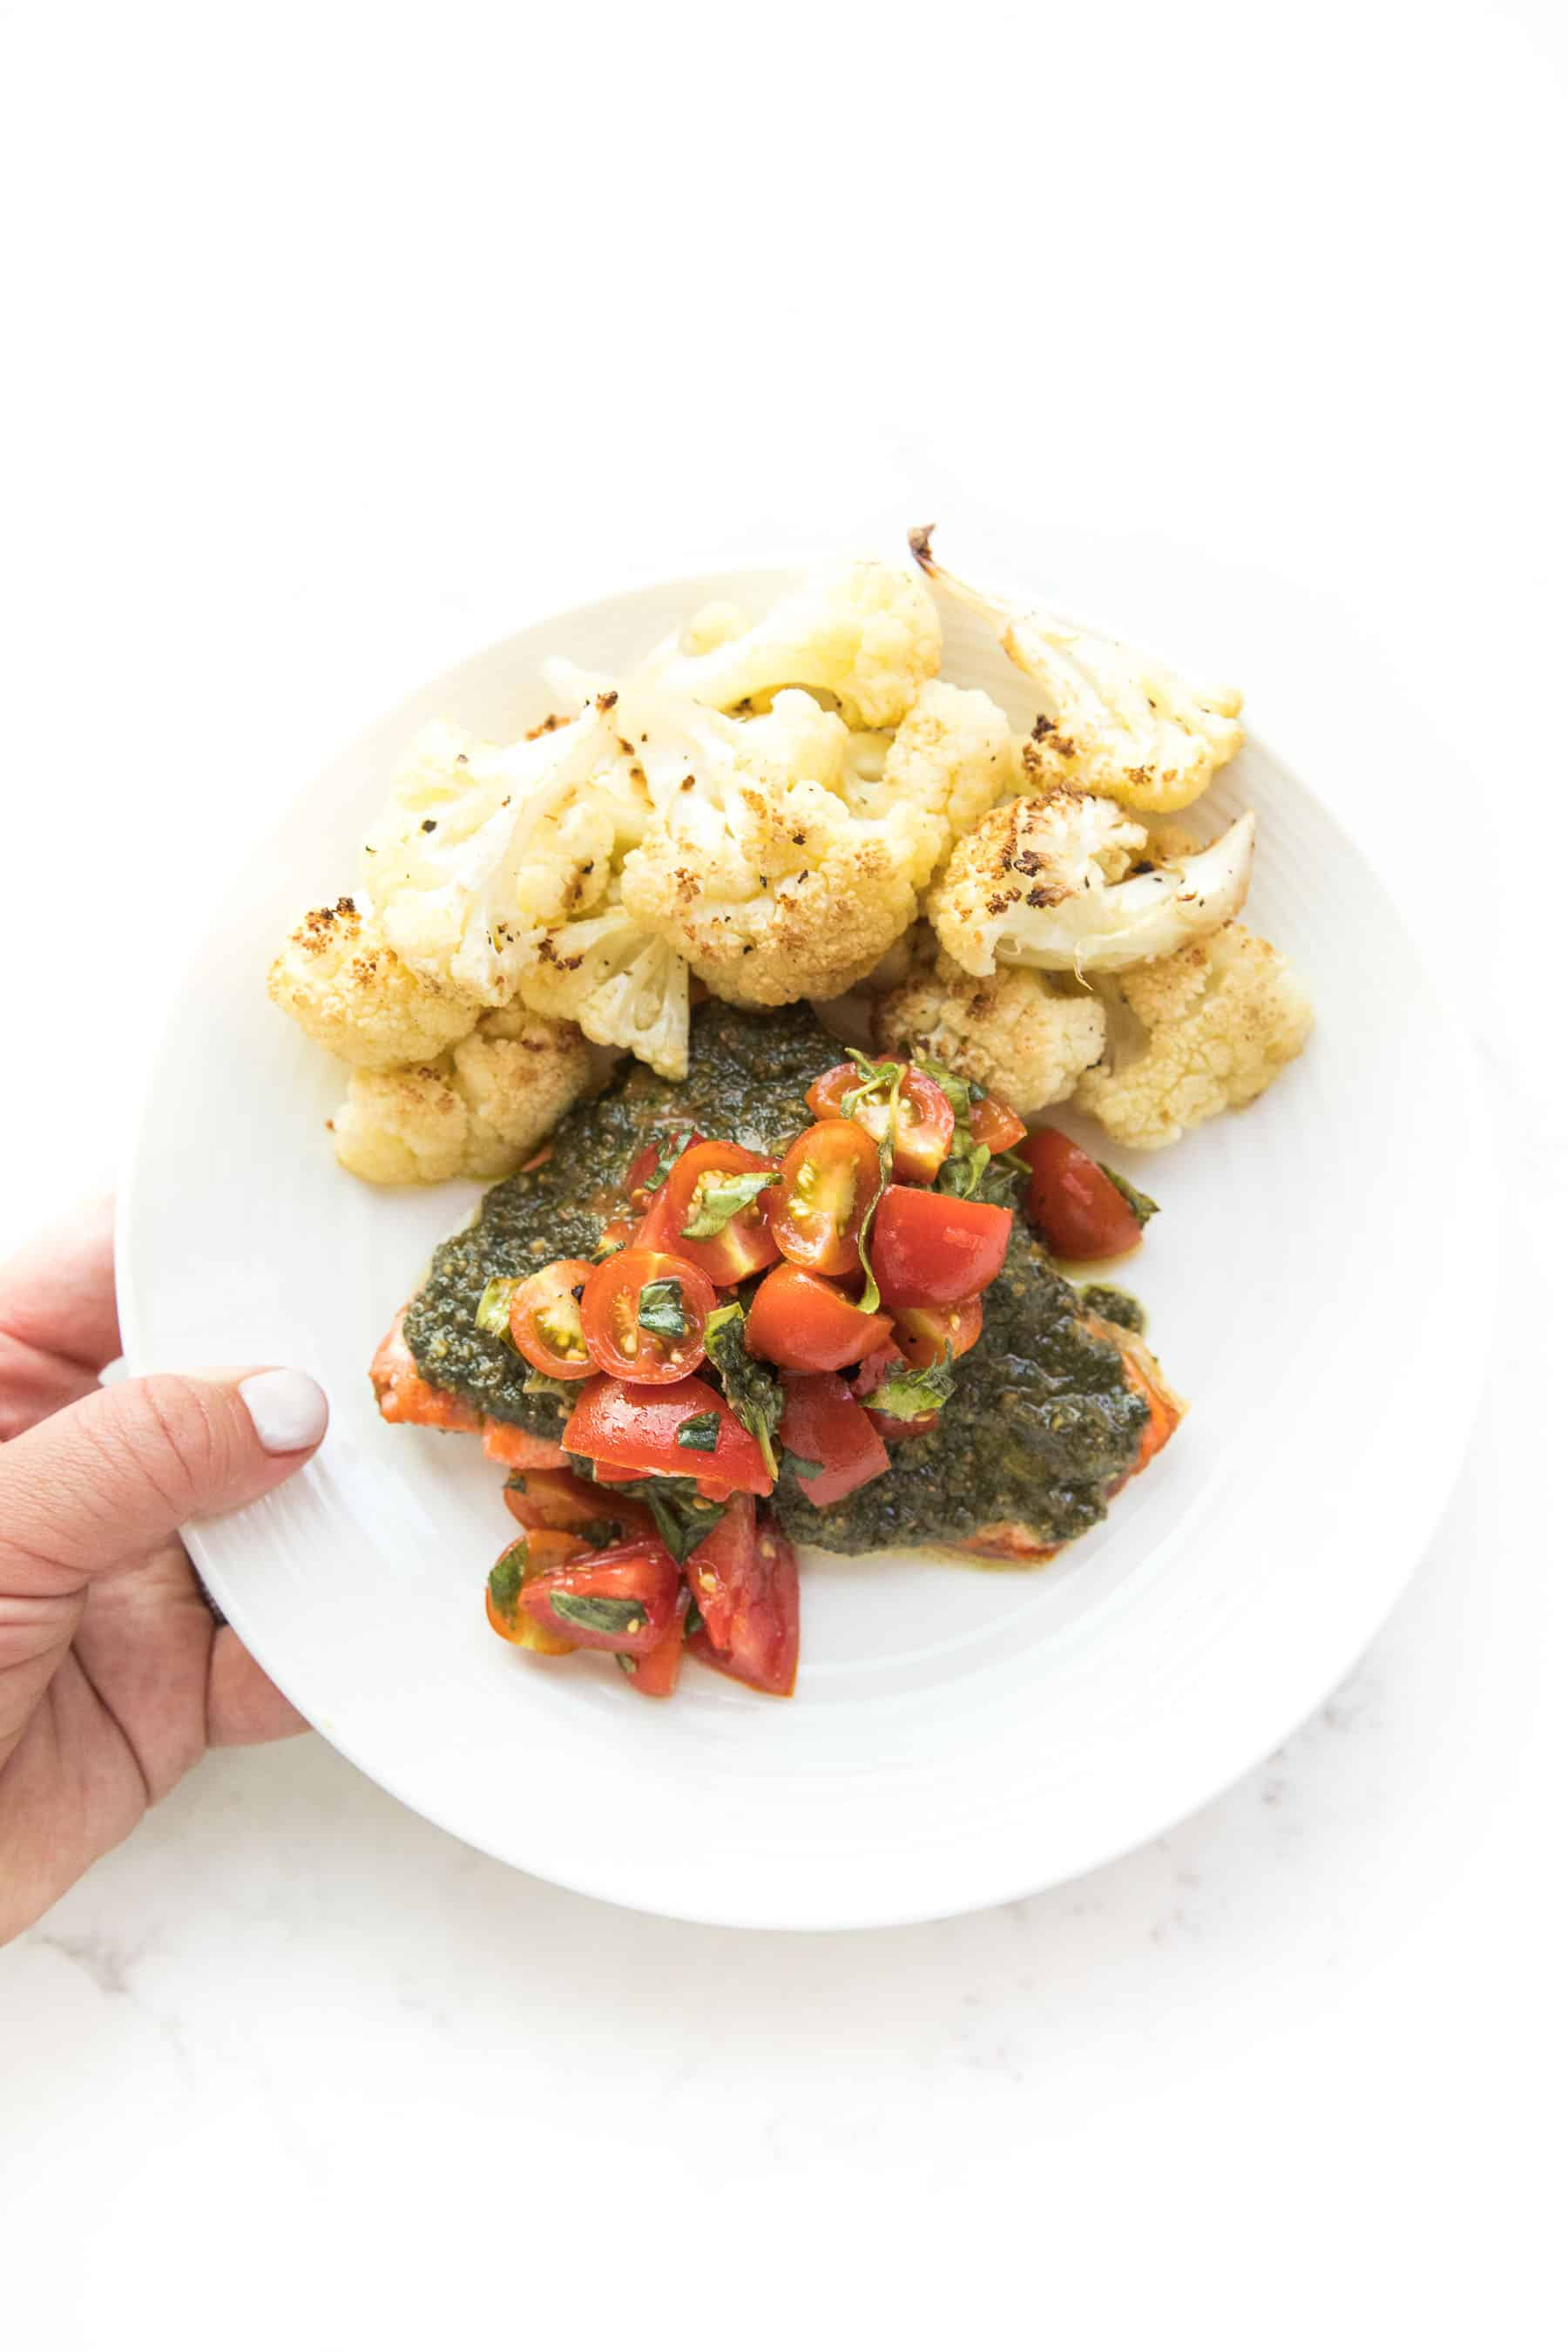 hand holding salmon topped with pesto and tomatoes on a white plate and white background